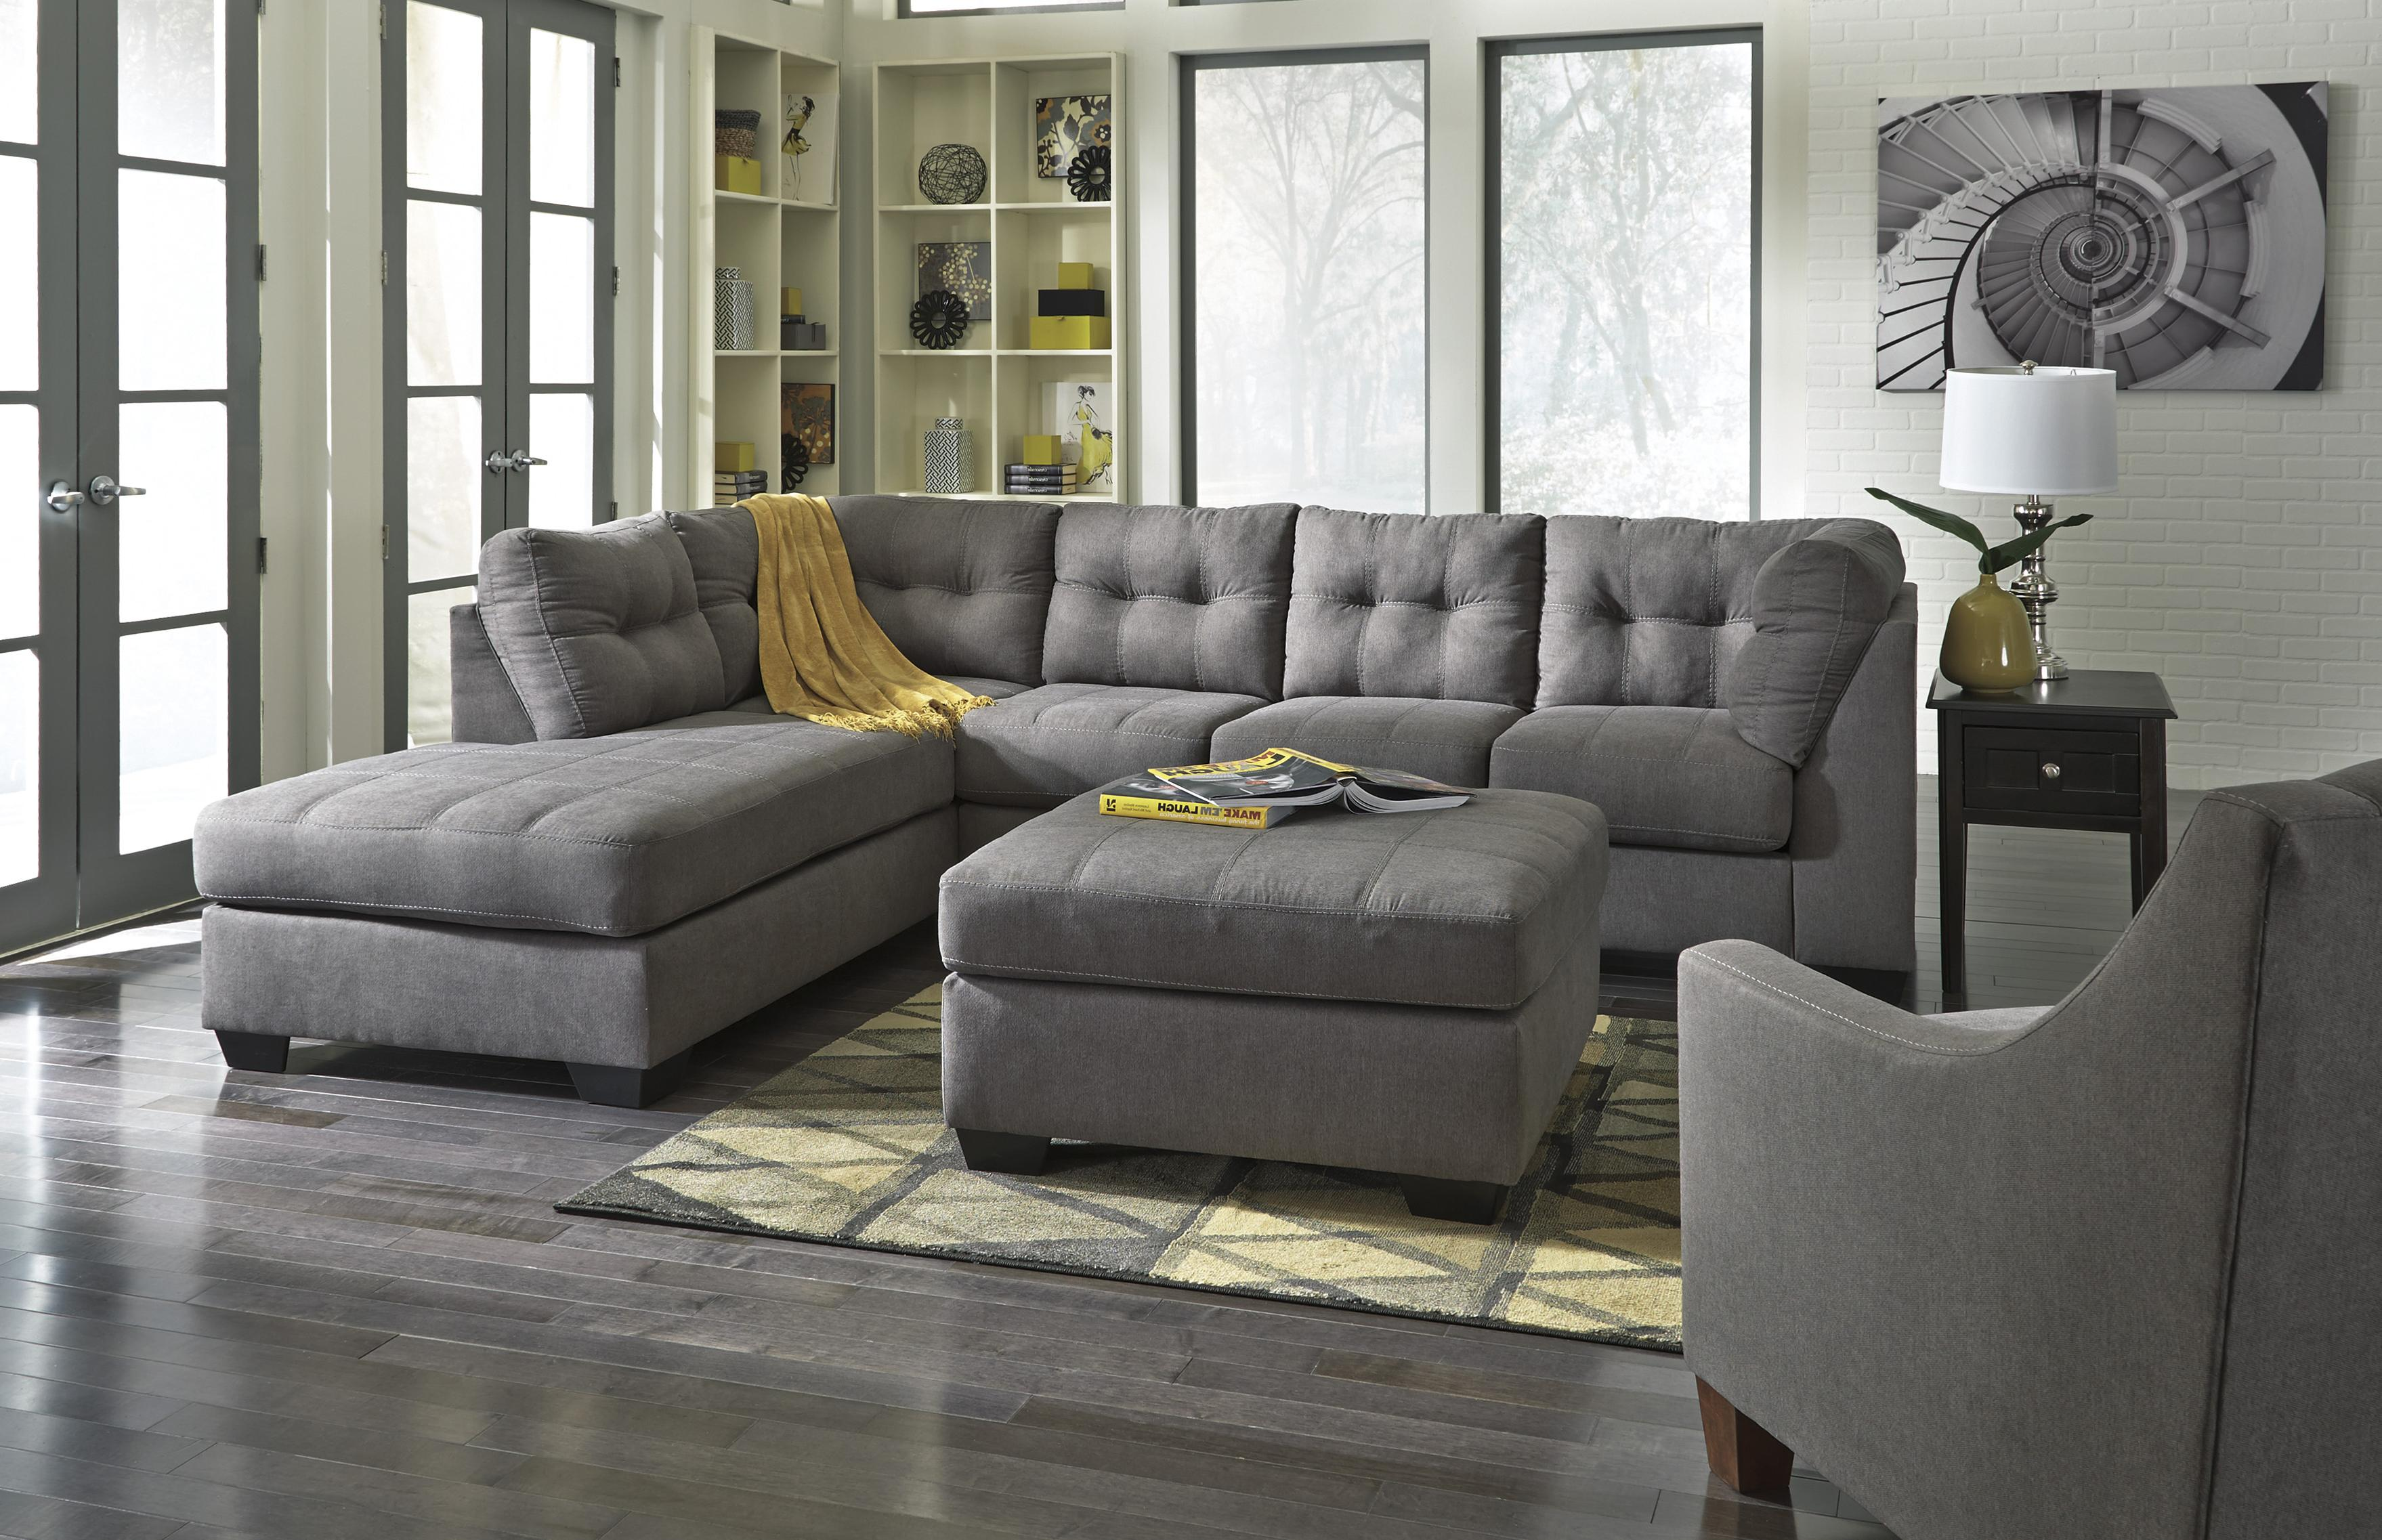 Benchcraft Maier - Charcoal Stationary Living Room Group - Item Number: 45200 Living Room Group 4